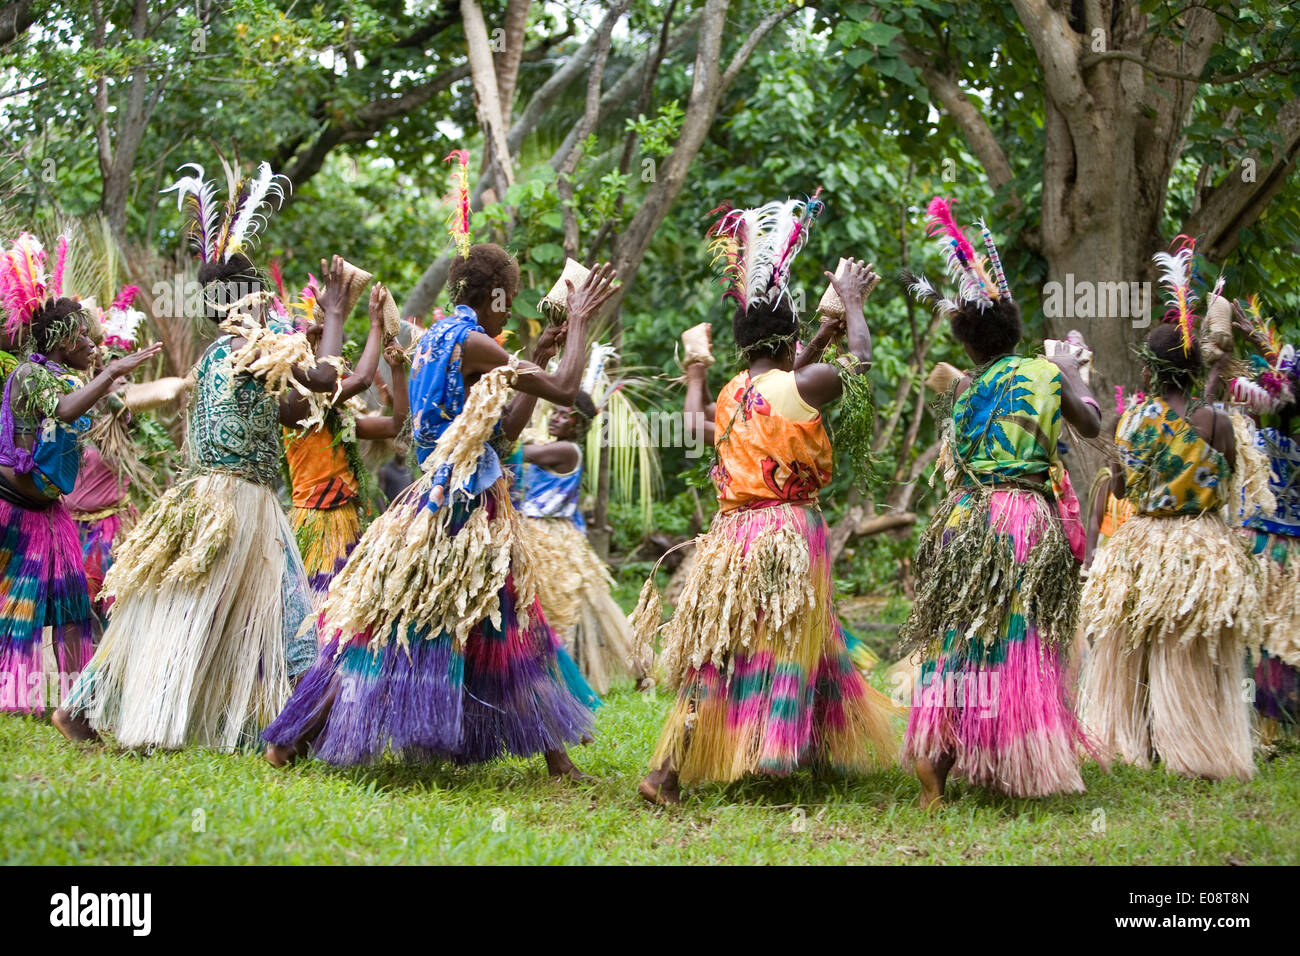 Colorful dance group, Tanna, Vanuatu, South Pacific - Stock Image